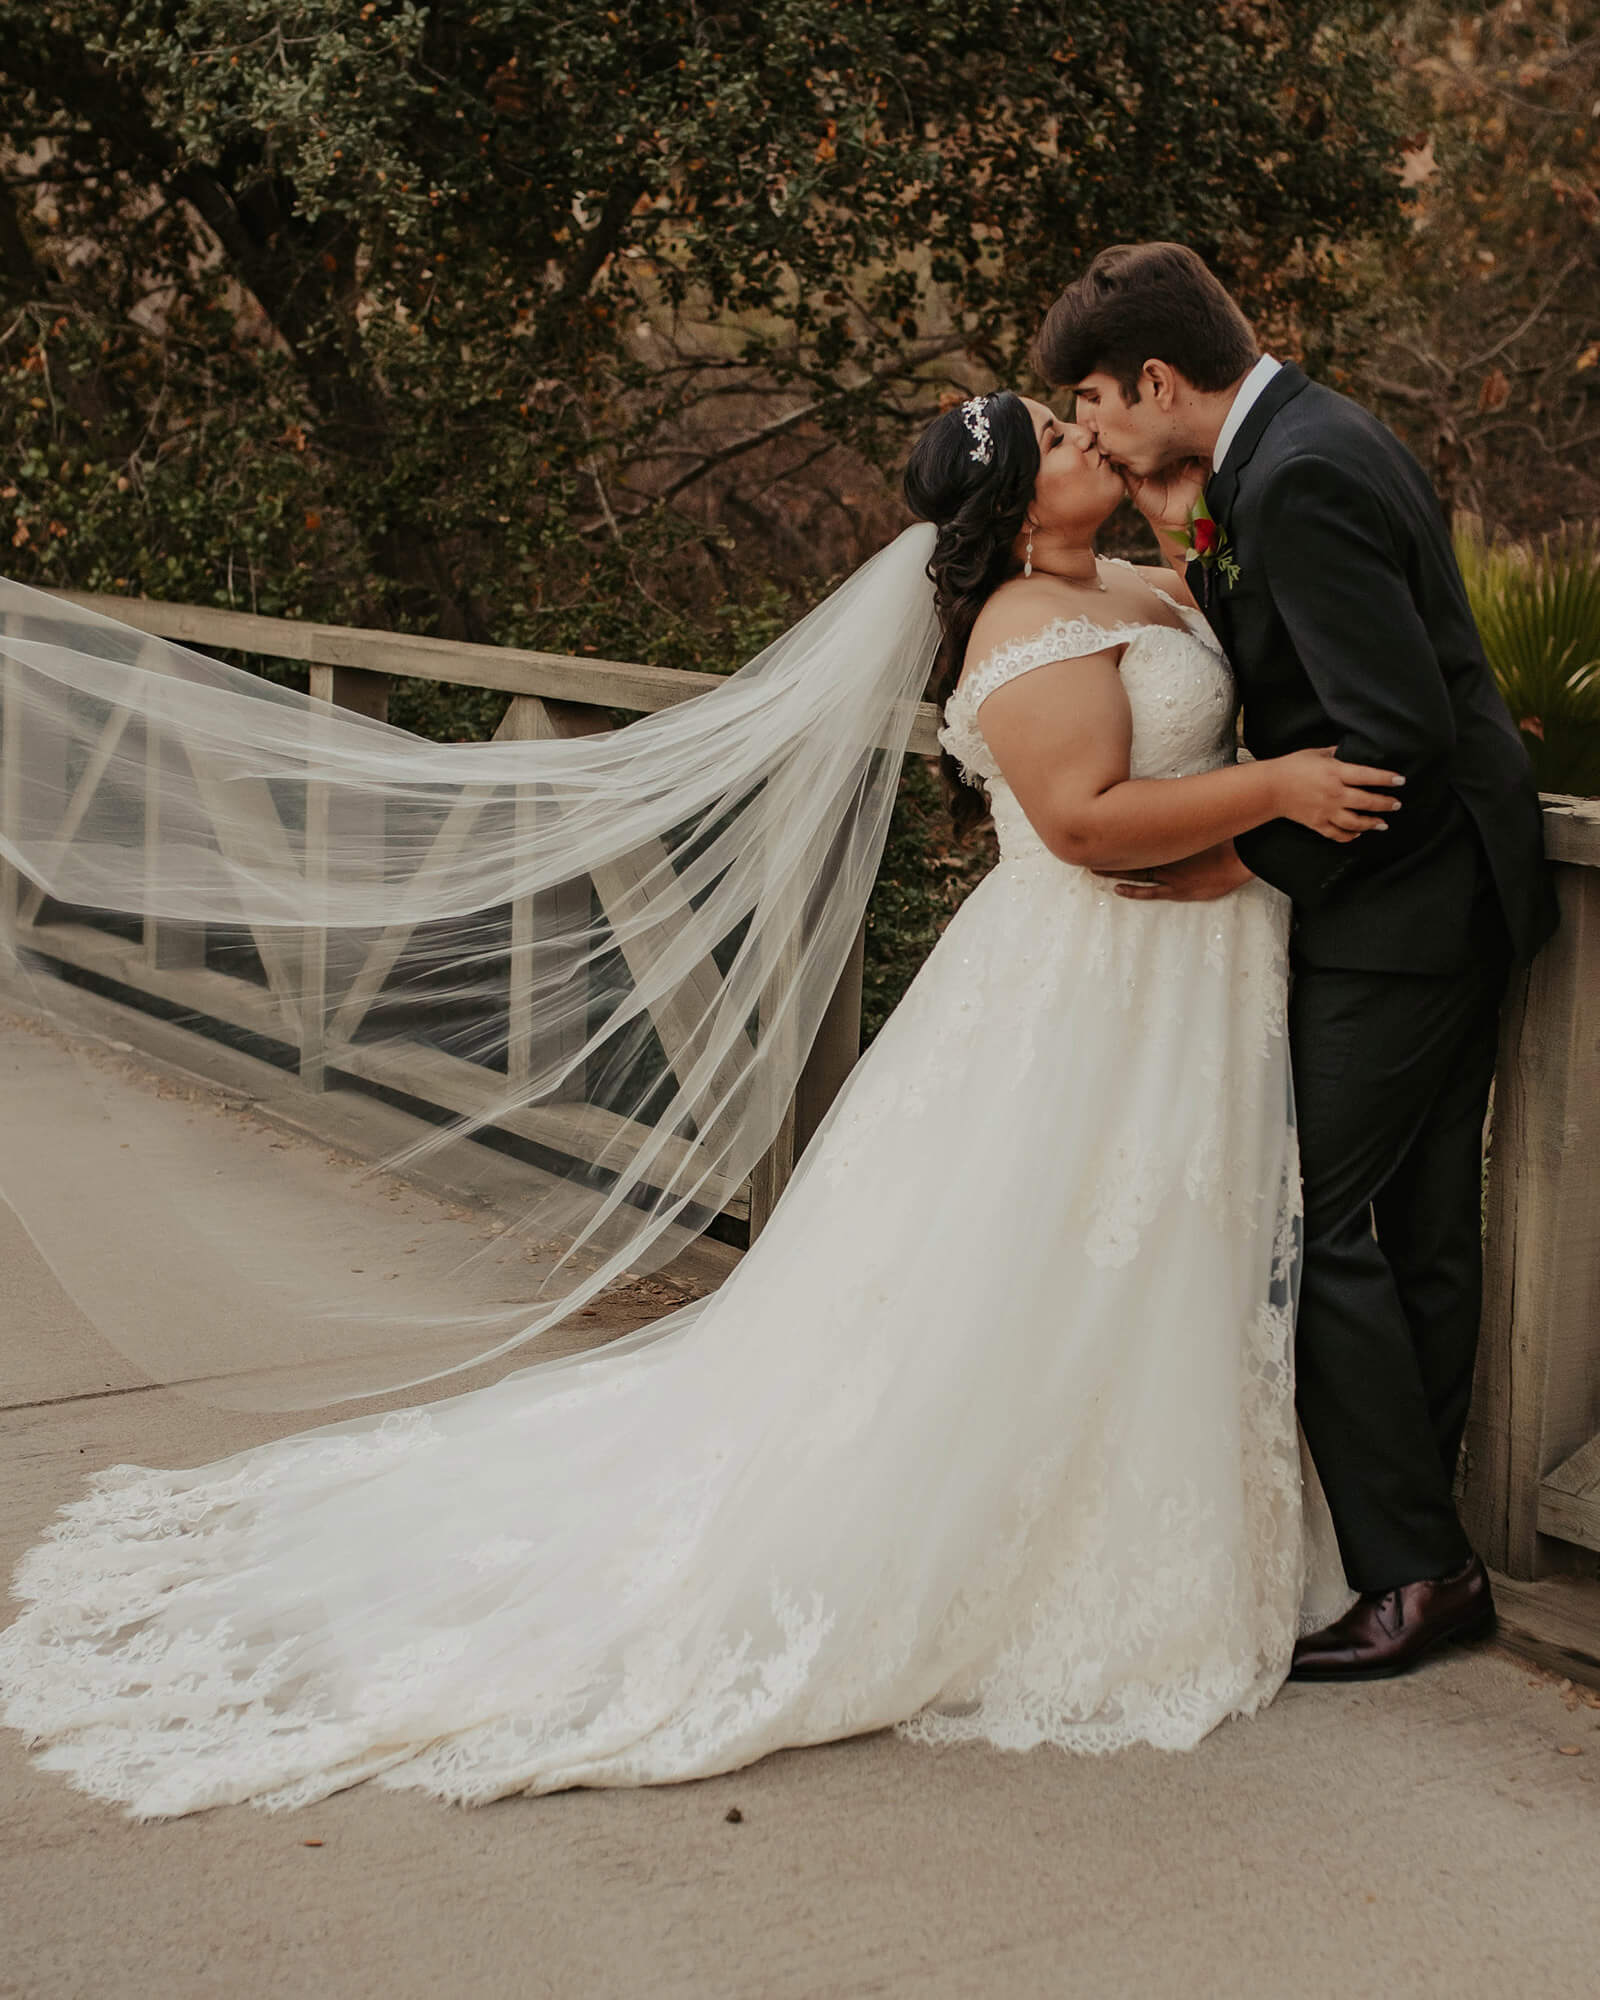 Congratulations to the Official Mr. & Mrs.